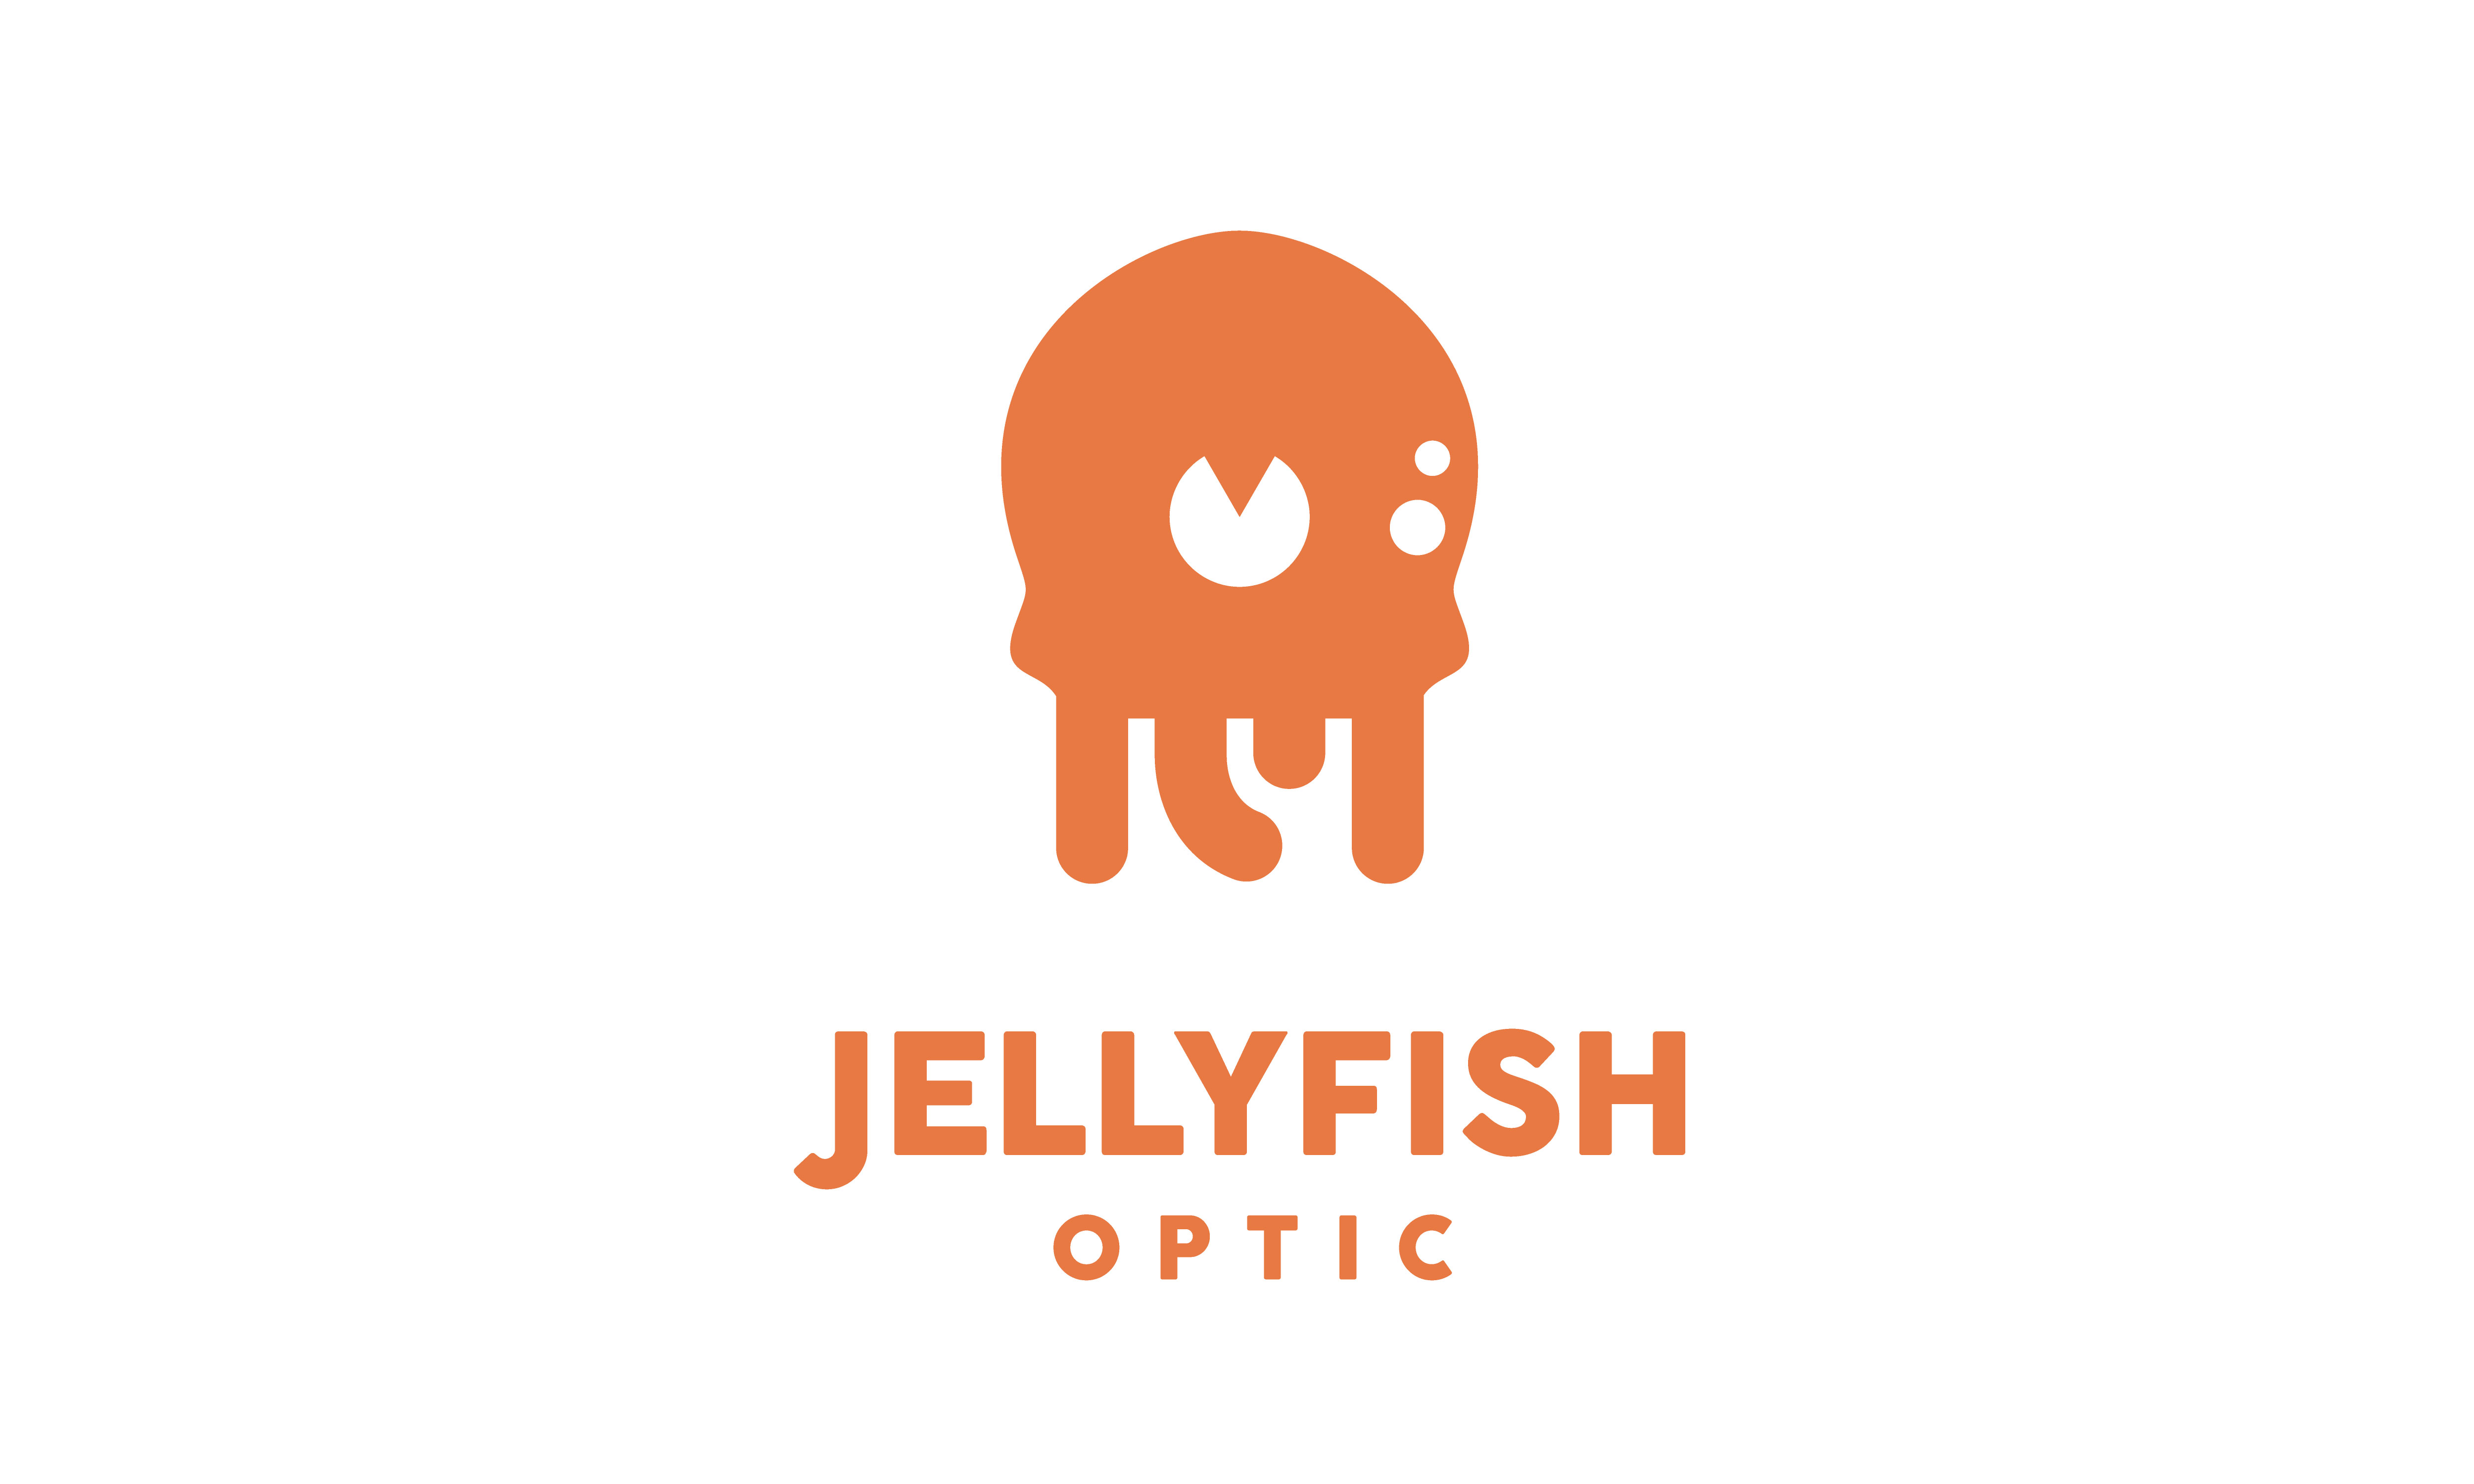 Download Free Squid Jellyfish With One Eye Lens Logo Graphic By Enola99d for Cricut Explore, Silhouette and other cutting machines.